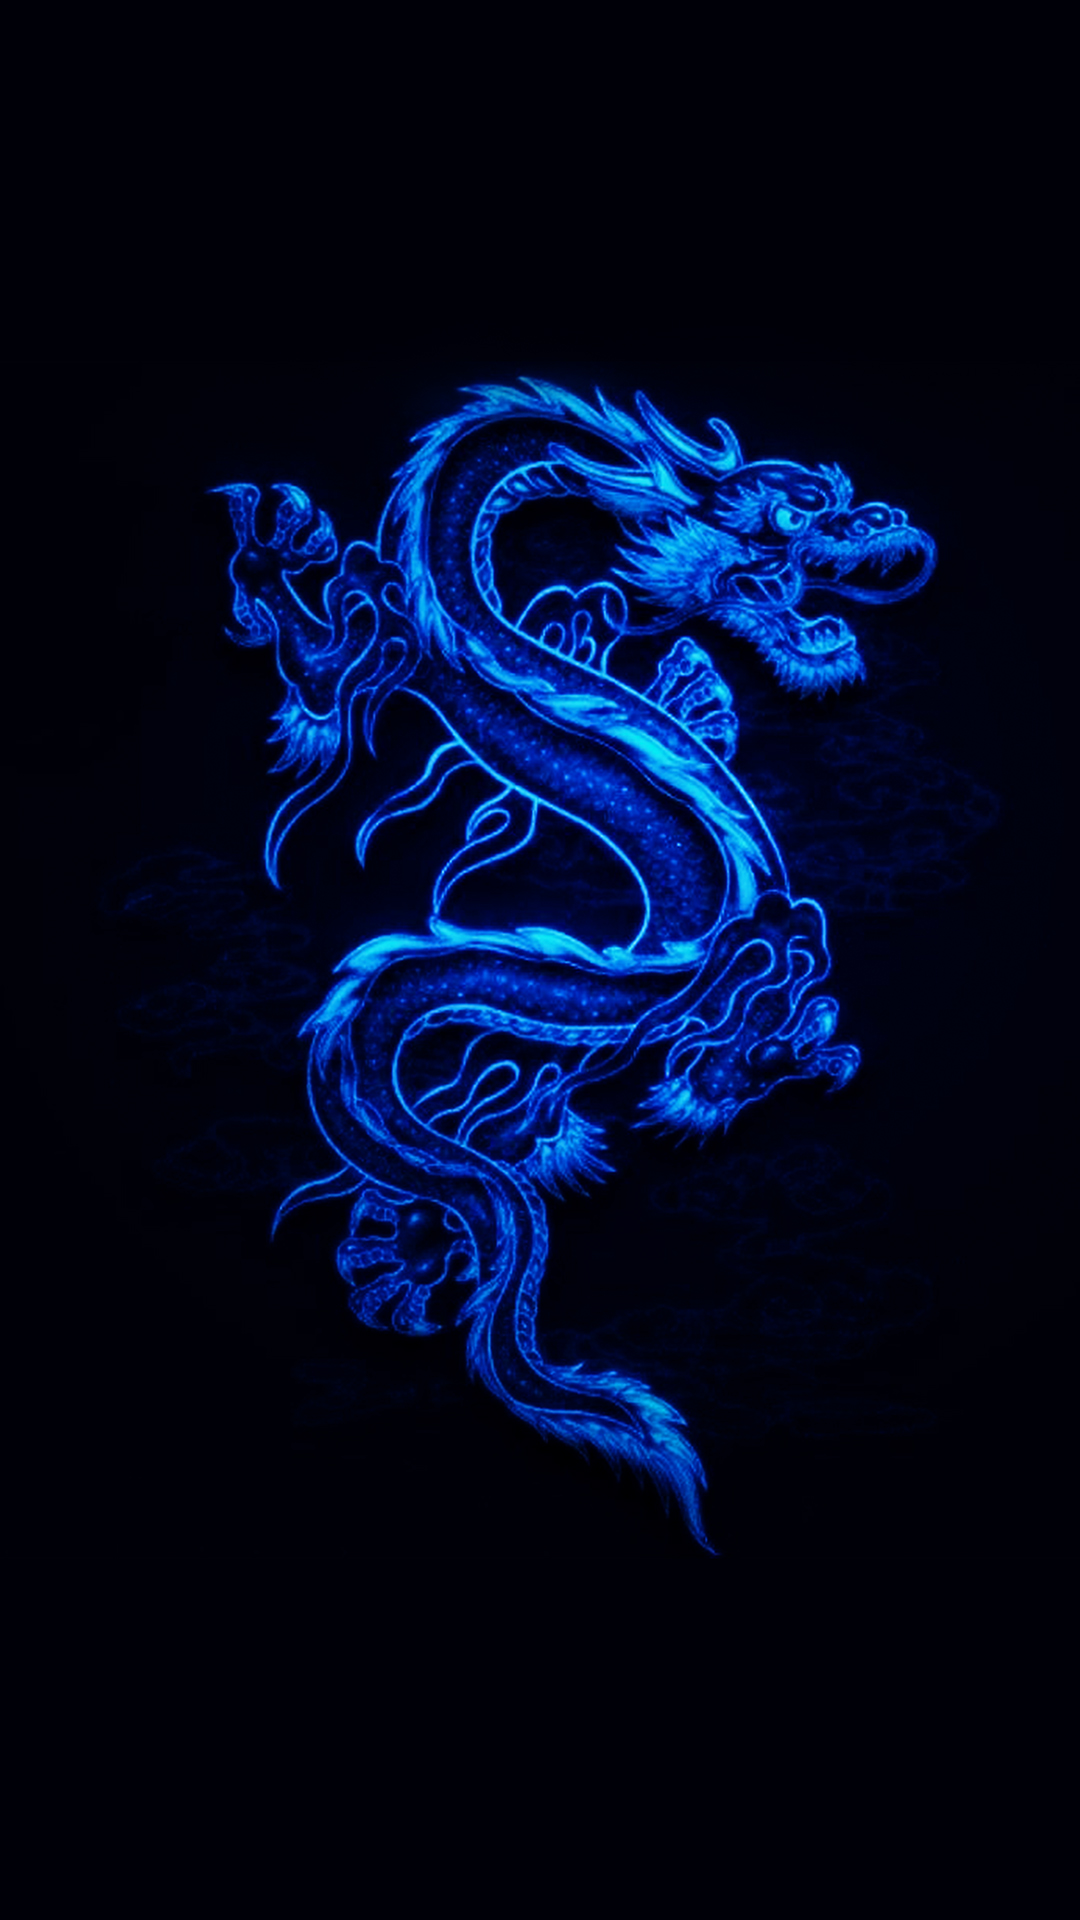 Cool Live Wallpapers For Iphone X Free Hd Blue Dragon 2 Phone Wallpaper 5547